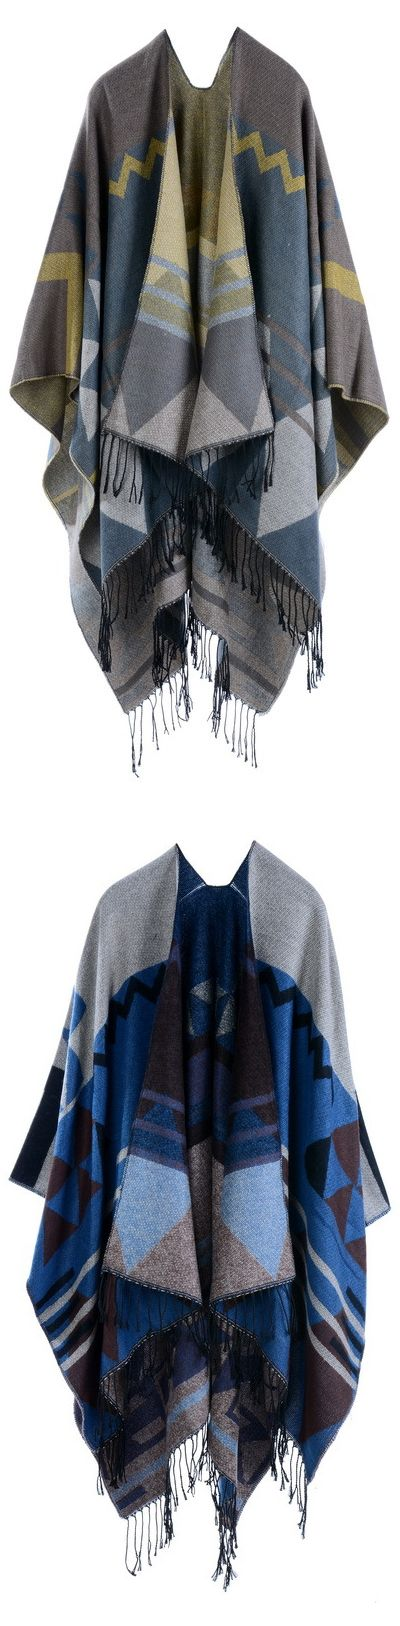 http://www.vogueclips.com/collections/autumn-winter-scarf/products/4401-tassels-ethnic-raglan-scarf